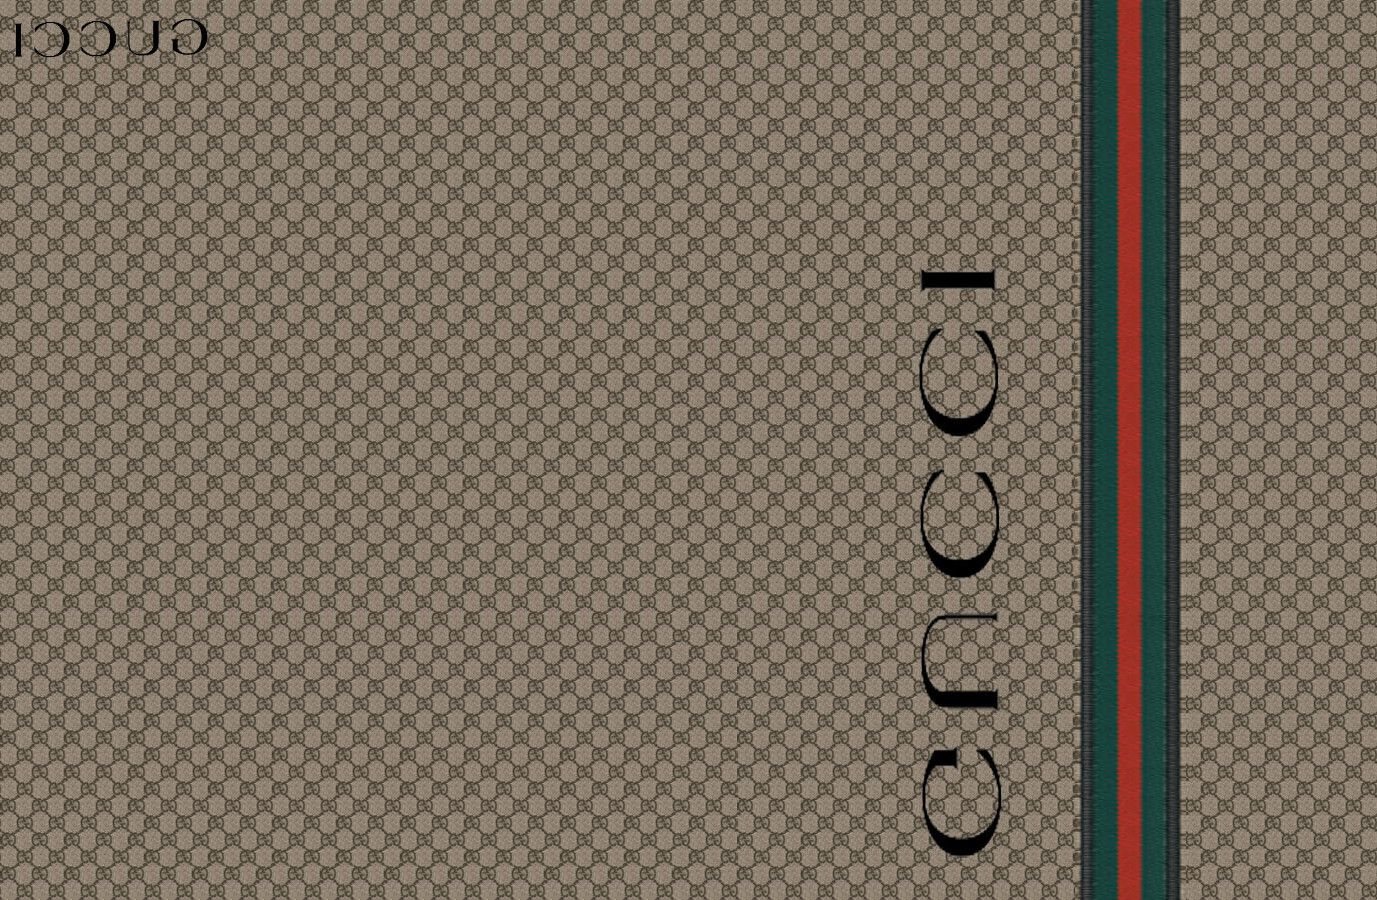 Gucci Logo Wallpaper 1377x900